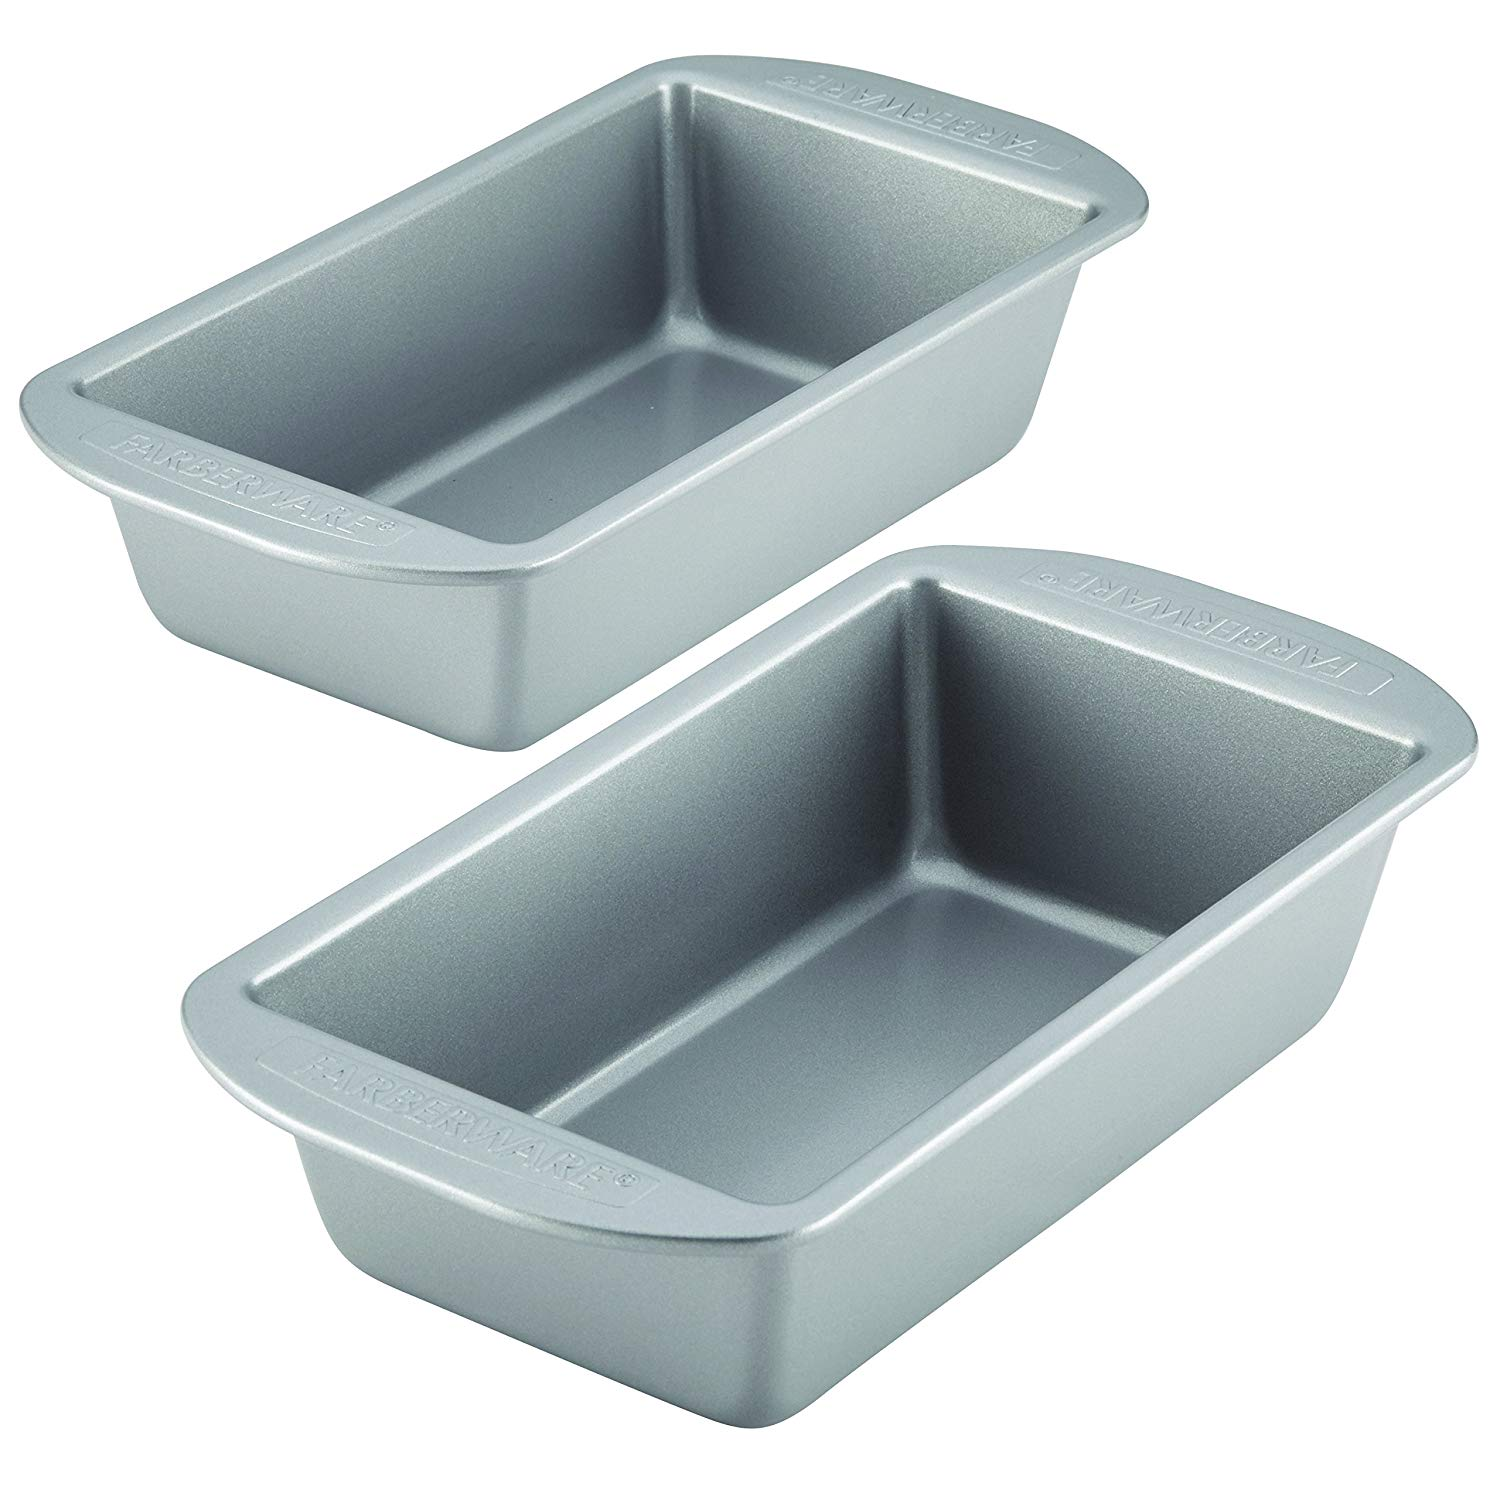 FARBERWARE Bread and Meatloaf Pan Set